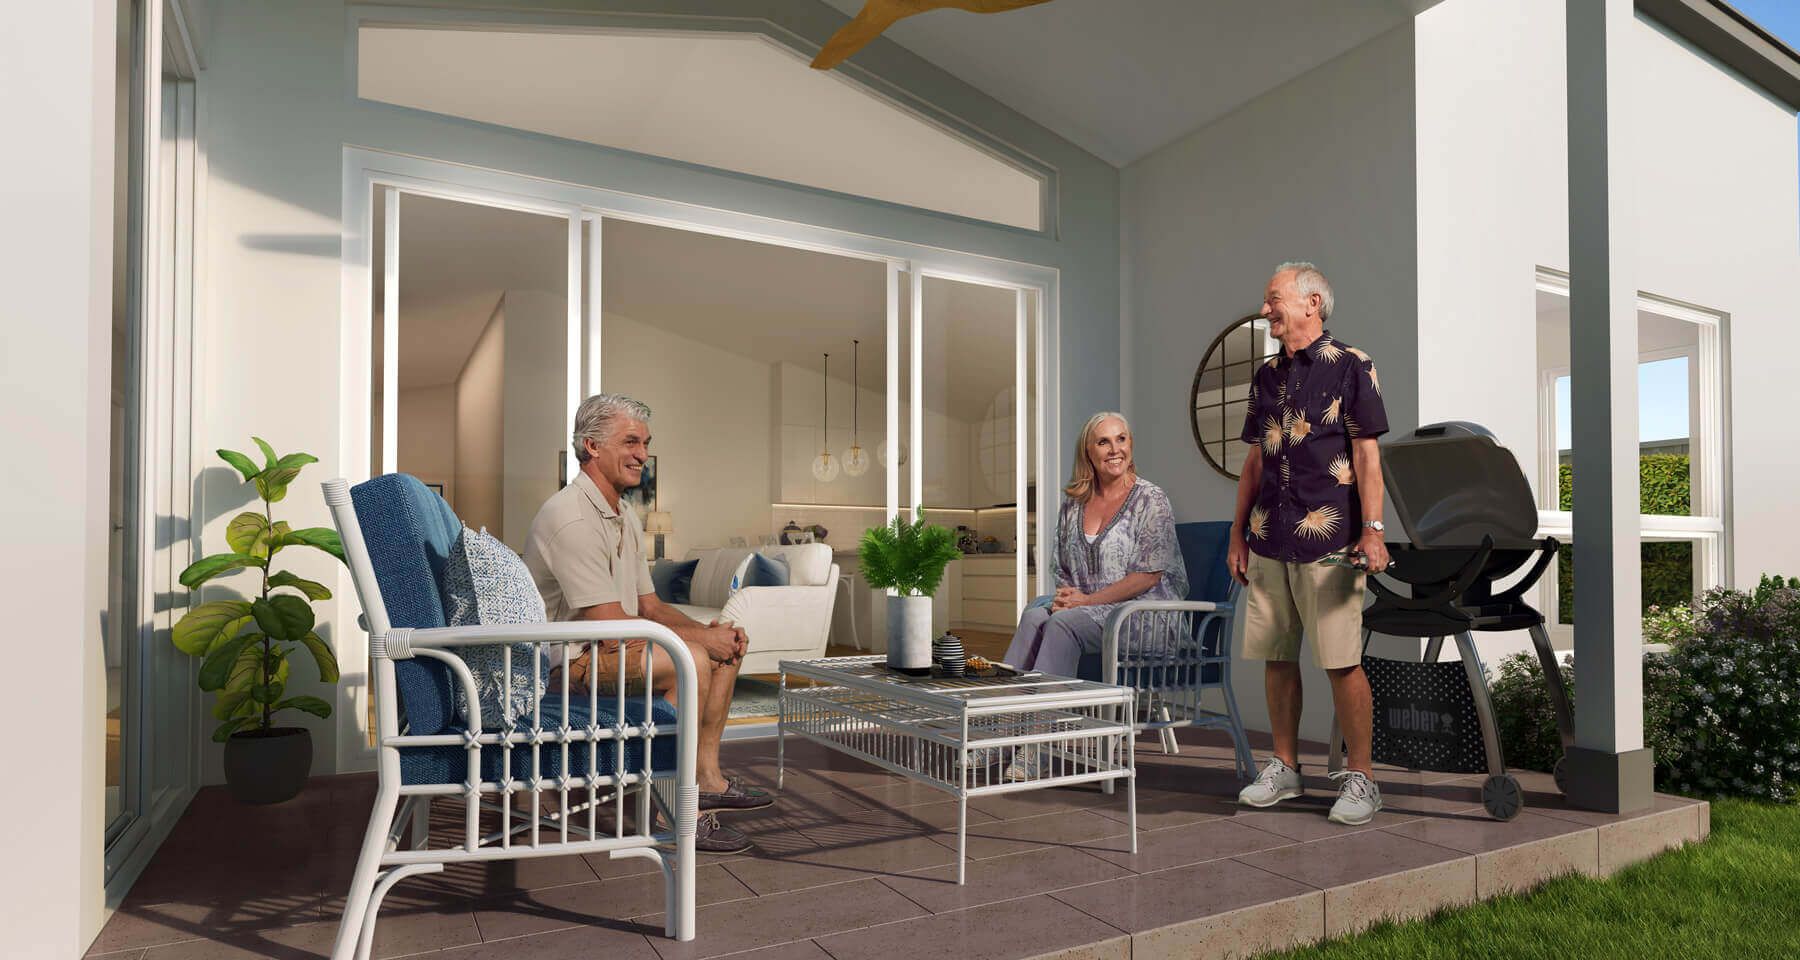 Residents entertaining in their homes outdoor alfresco area